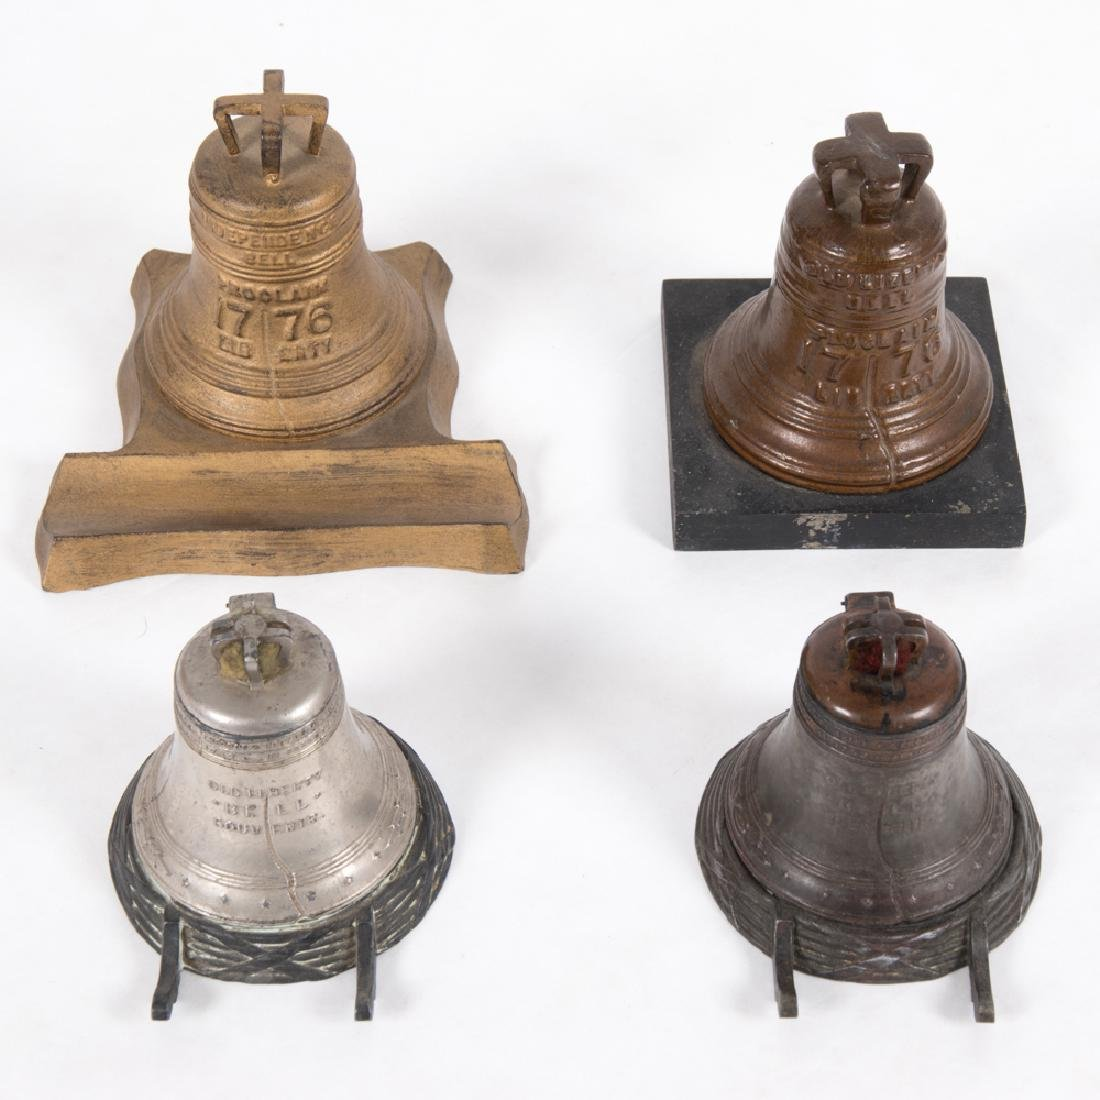 A Group of Three Metal Souvenir Inkwells in the form of